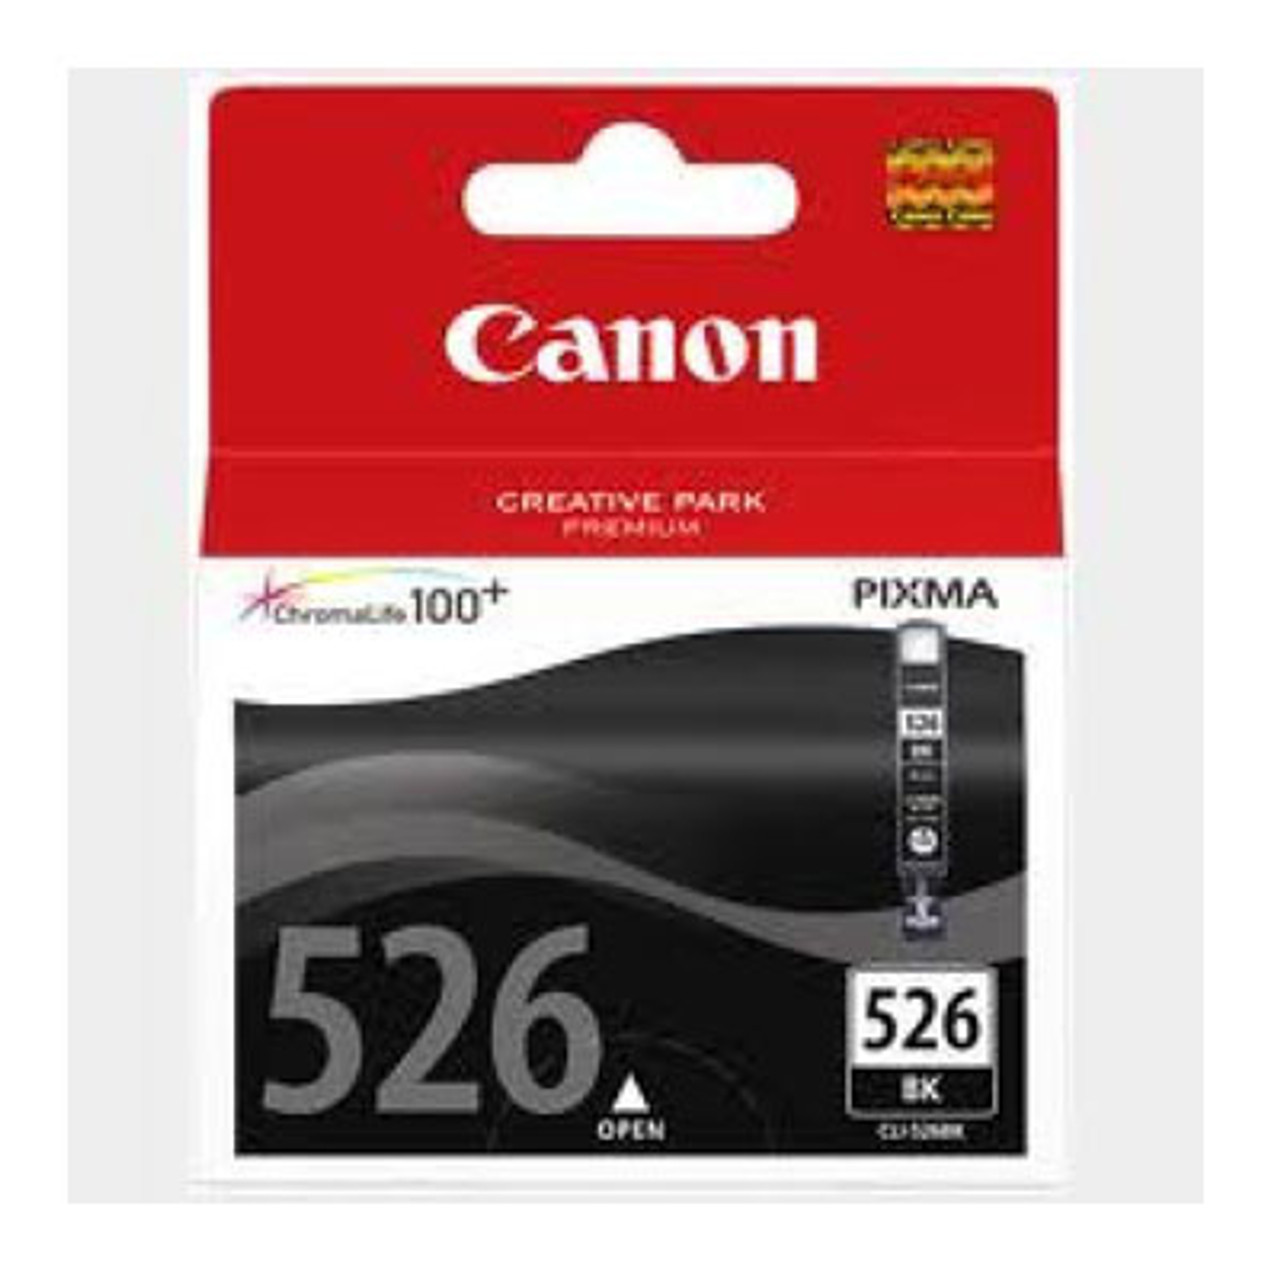 Image for Canon CLI526 Photo Black Ink 2,185 pages Photo Black CX Computer Superstore